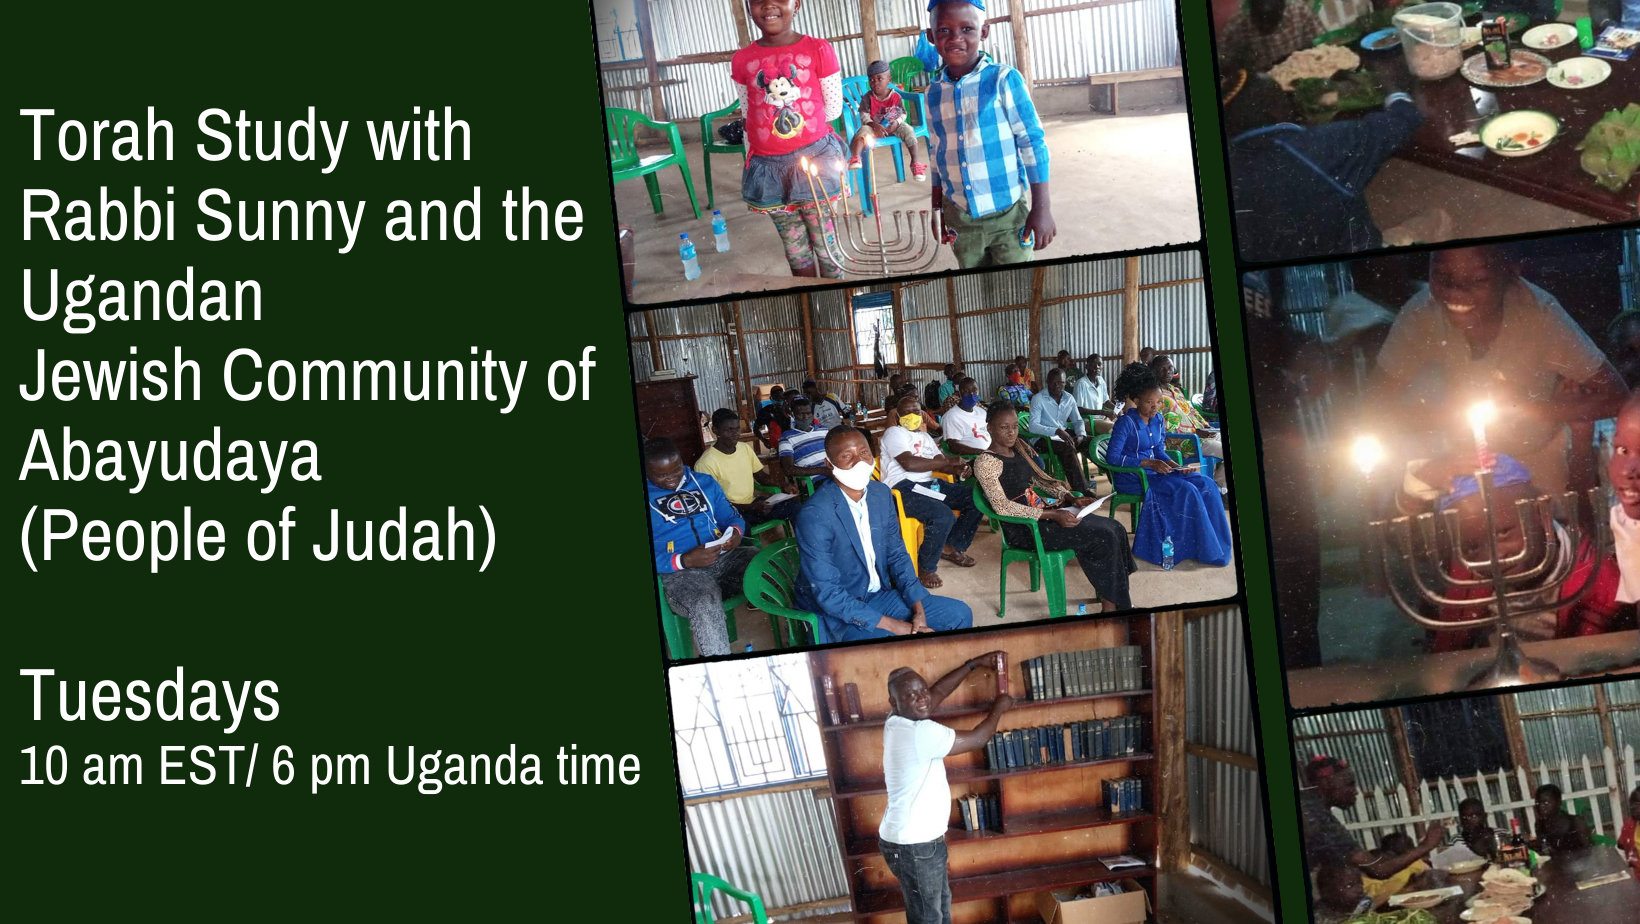 """<span class=""""slider_description"""">Join Rabbi Sunny weekly for Torah Study with congregation in Uganda.  Link in BJC Now.</span>"""